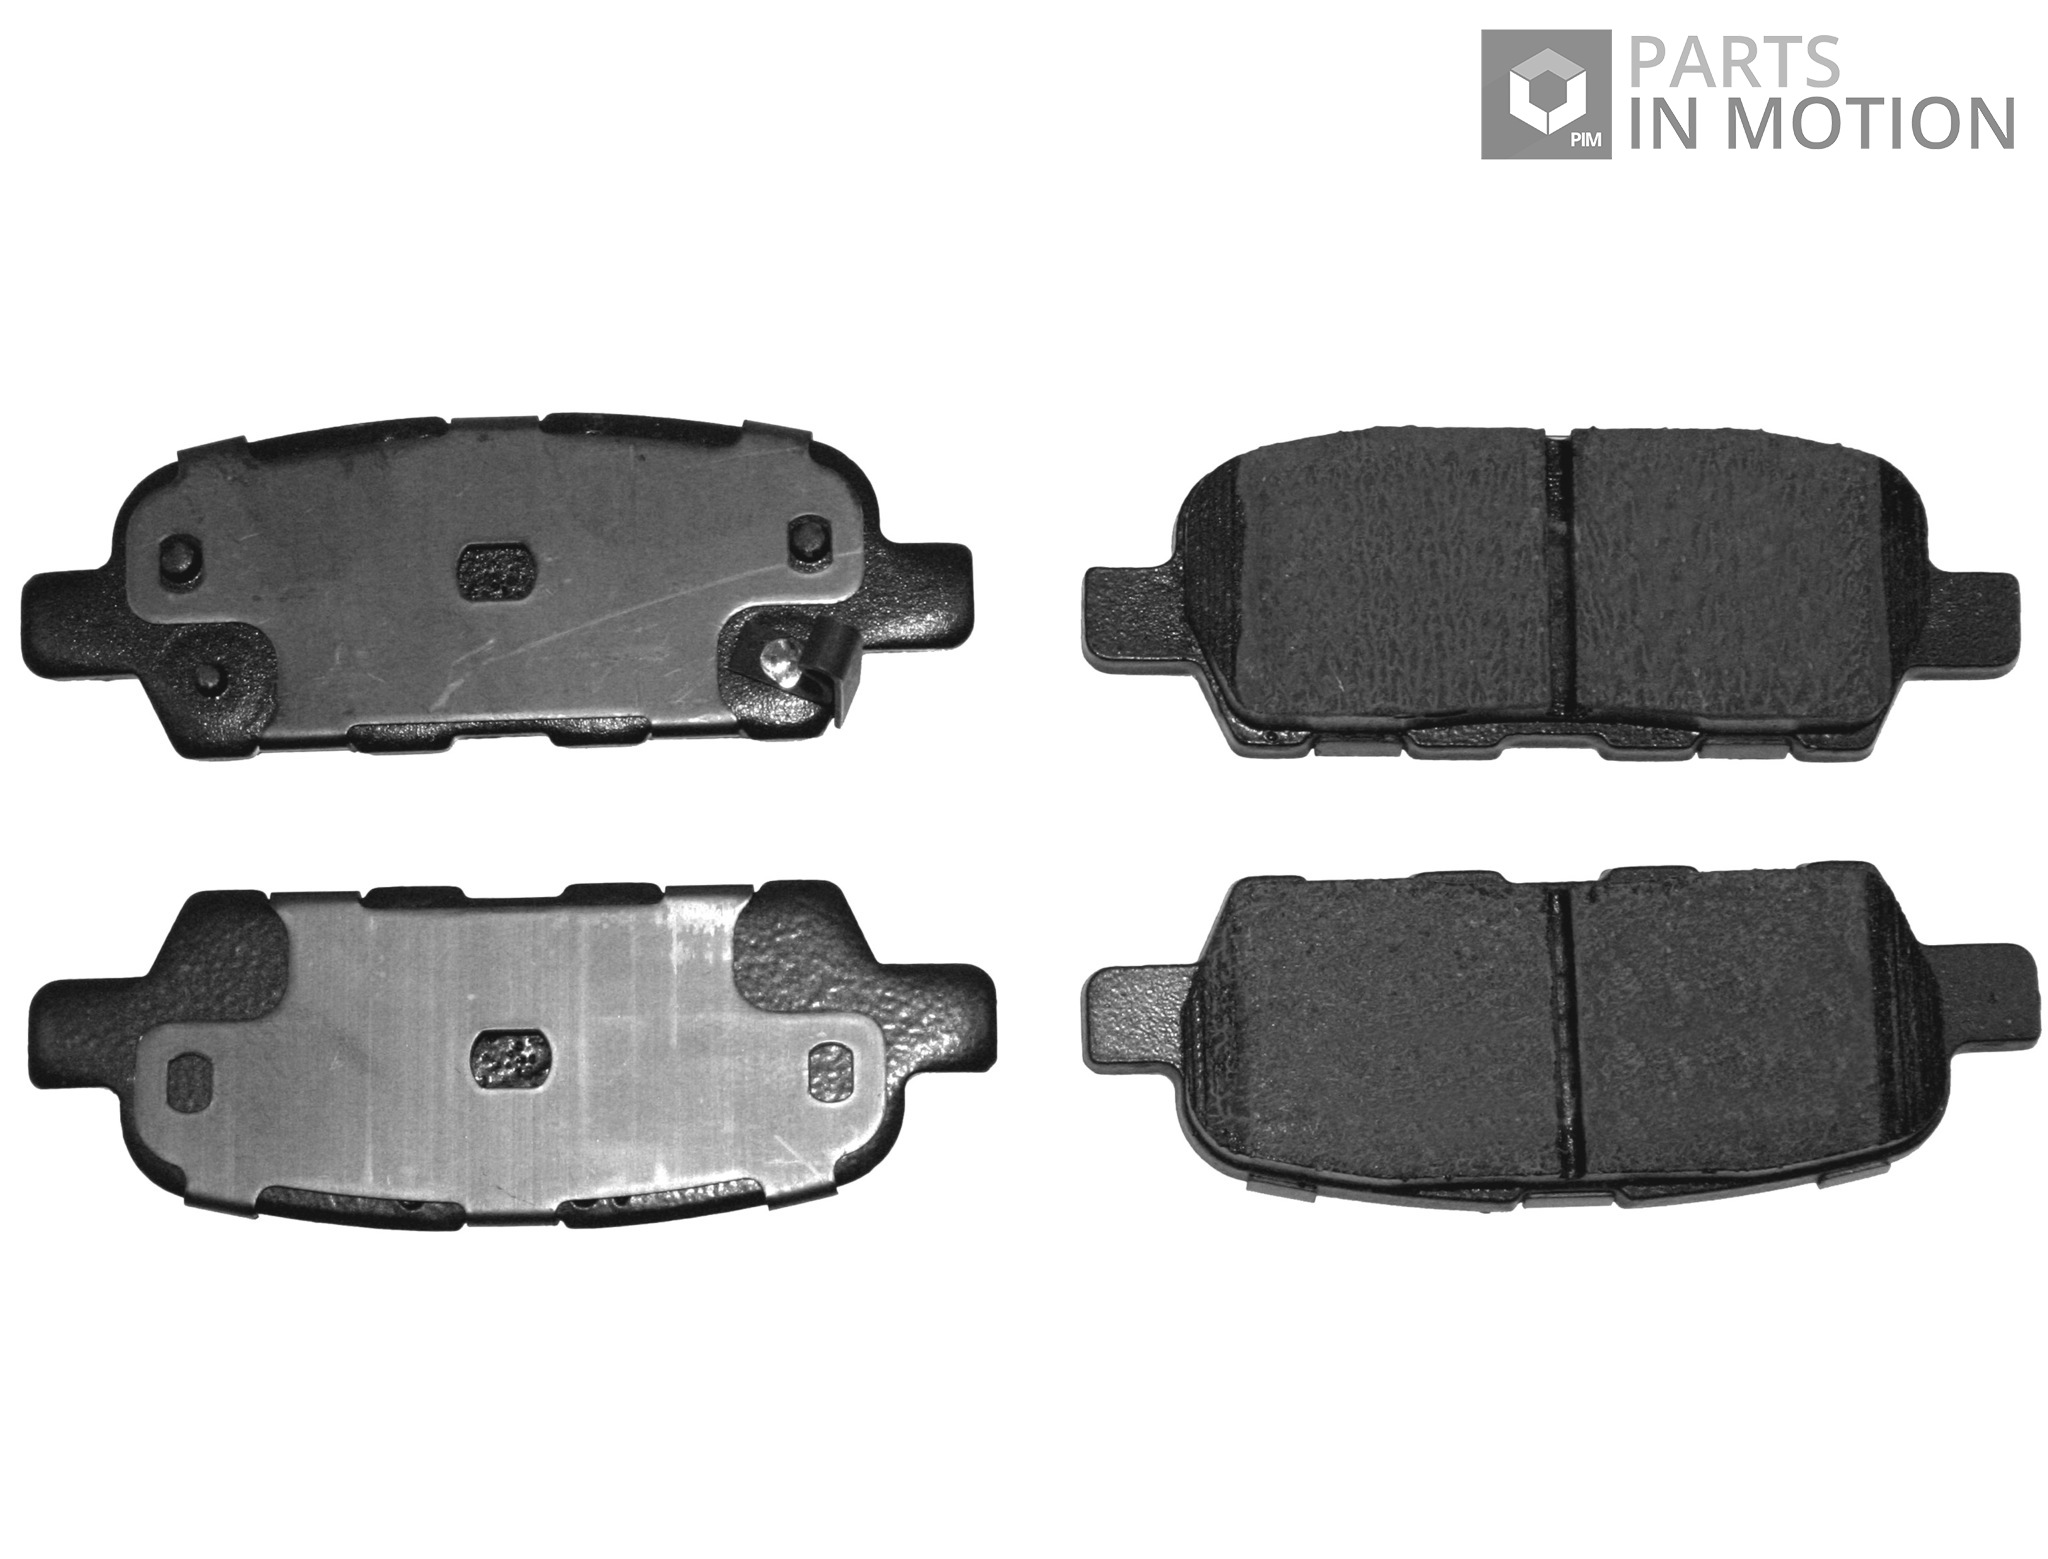 New Fits Nissan X-Trail T31 2.0 dCi FWD Genuine Comline Rear Brake Pads Set